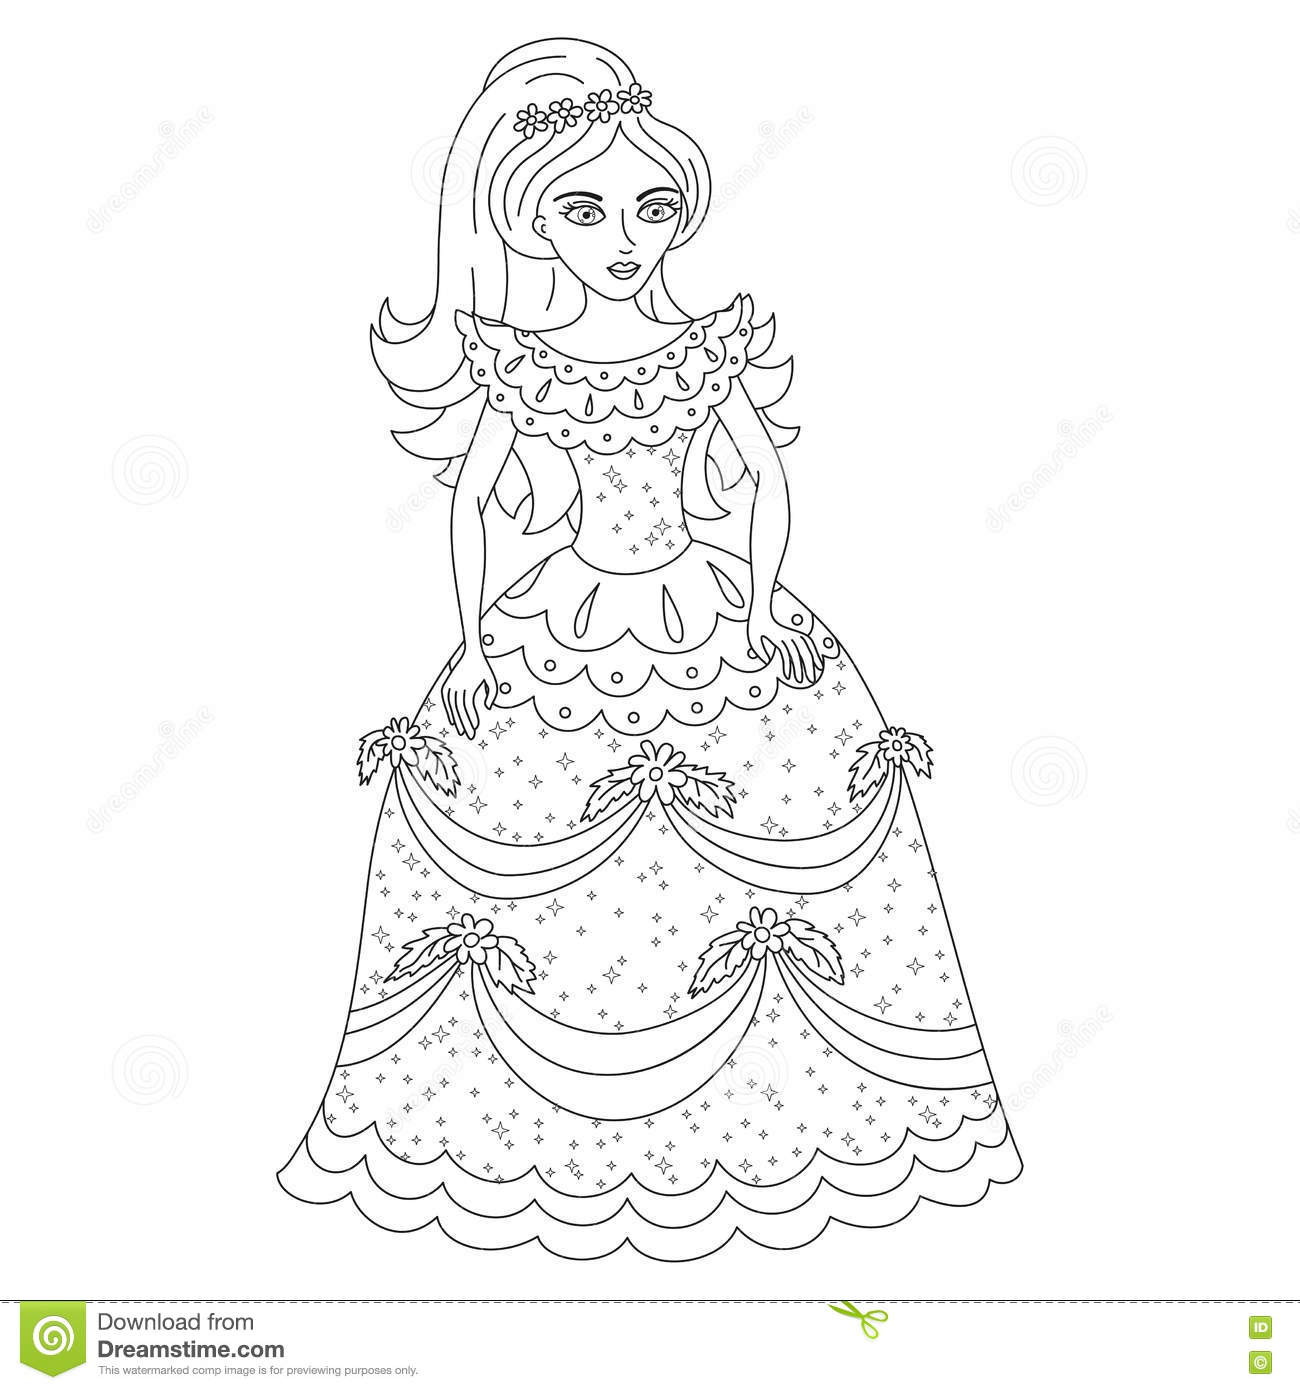 Coloring book princess - Beautiful Princess In Shining Dress With Spangles Coloring Book Page Stock Vector